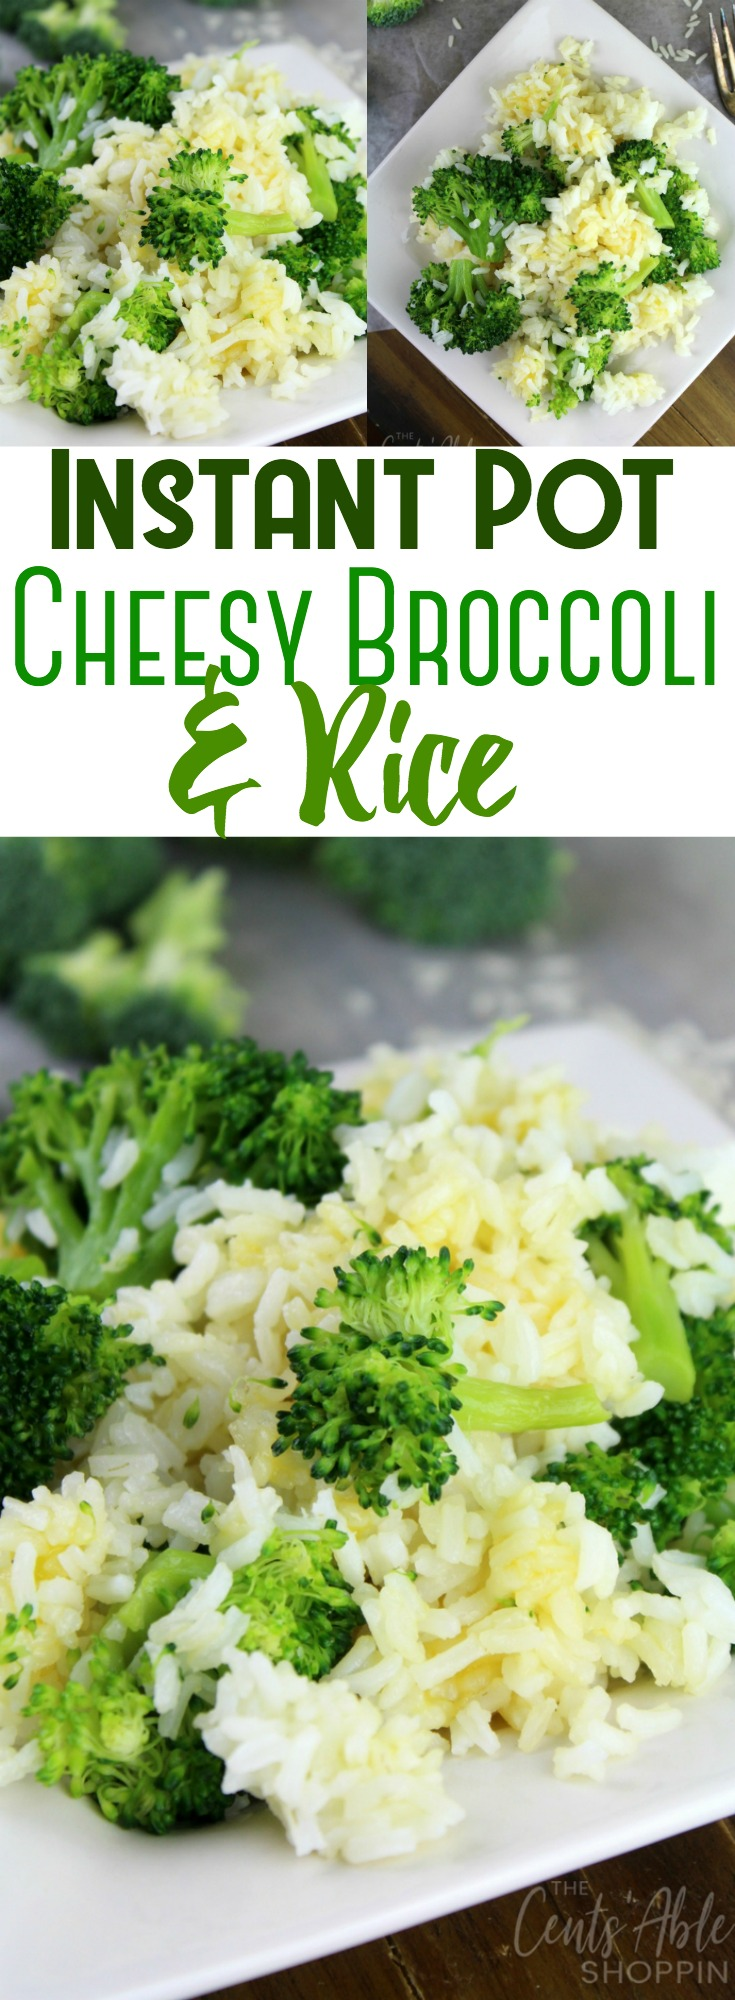 Combine simple, healthy ingredients to make this delicious Cheesy Broccoli and Rice in under 20 minutes using your Instant Pot!